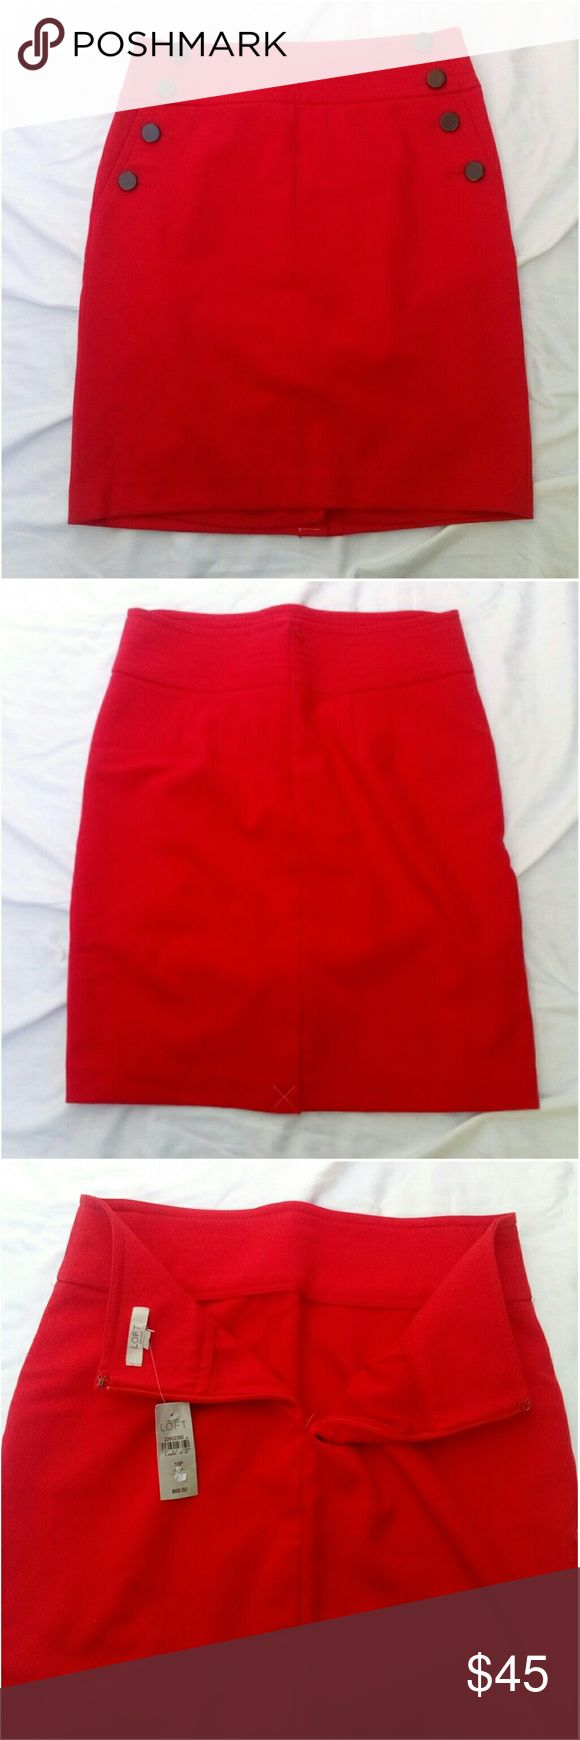 Ann Taylor Loft Sailor Pencil Skirt NWT! Ann Taylor Loft Bi-stretch sailor pencil skirt in fireball red size 10 petite. Shell: 64% polyester 33% rayon 3% spandex lining: 100% polyester. Machine wash cold separately, gentle cycle, only non-chlorine bleach when needed, tumble dry low, cool iron if needed or dry clean. *My measurements Waist- 30 Seam- 21 LOFT Skirts Pencil